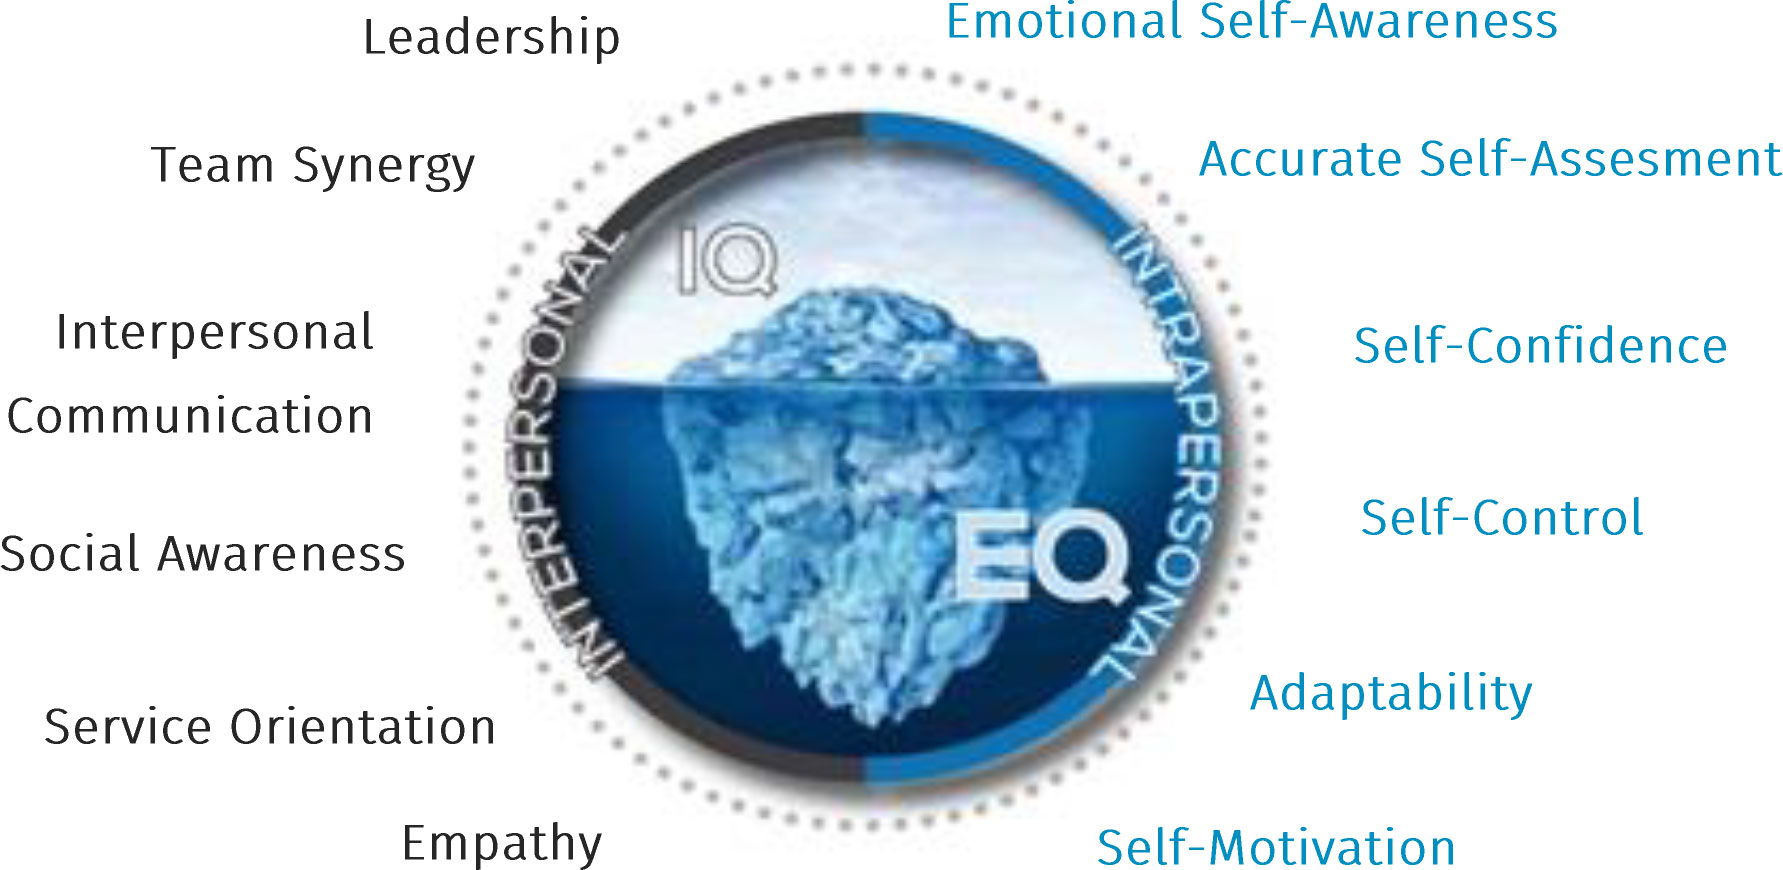 Image of a iceberg illustrating the 12 emotional intelligence competencies